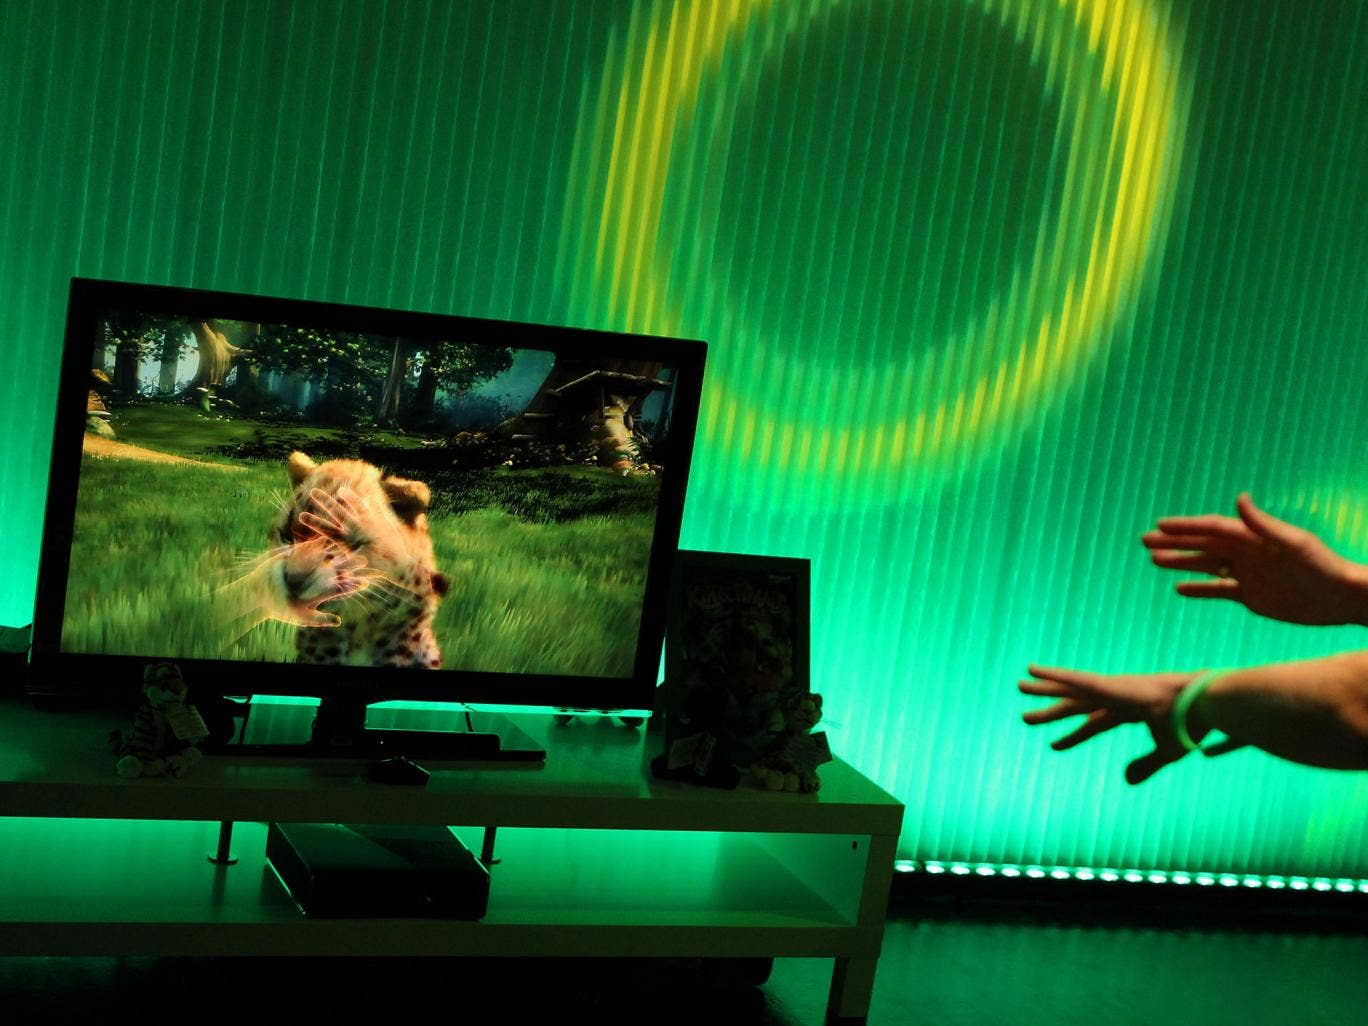 Microsoft's Xbox 360 is equipped with a Kinect motion-sensing controller